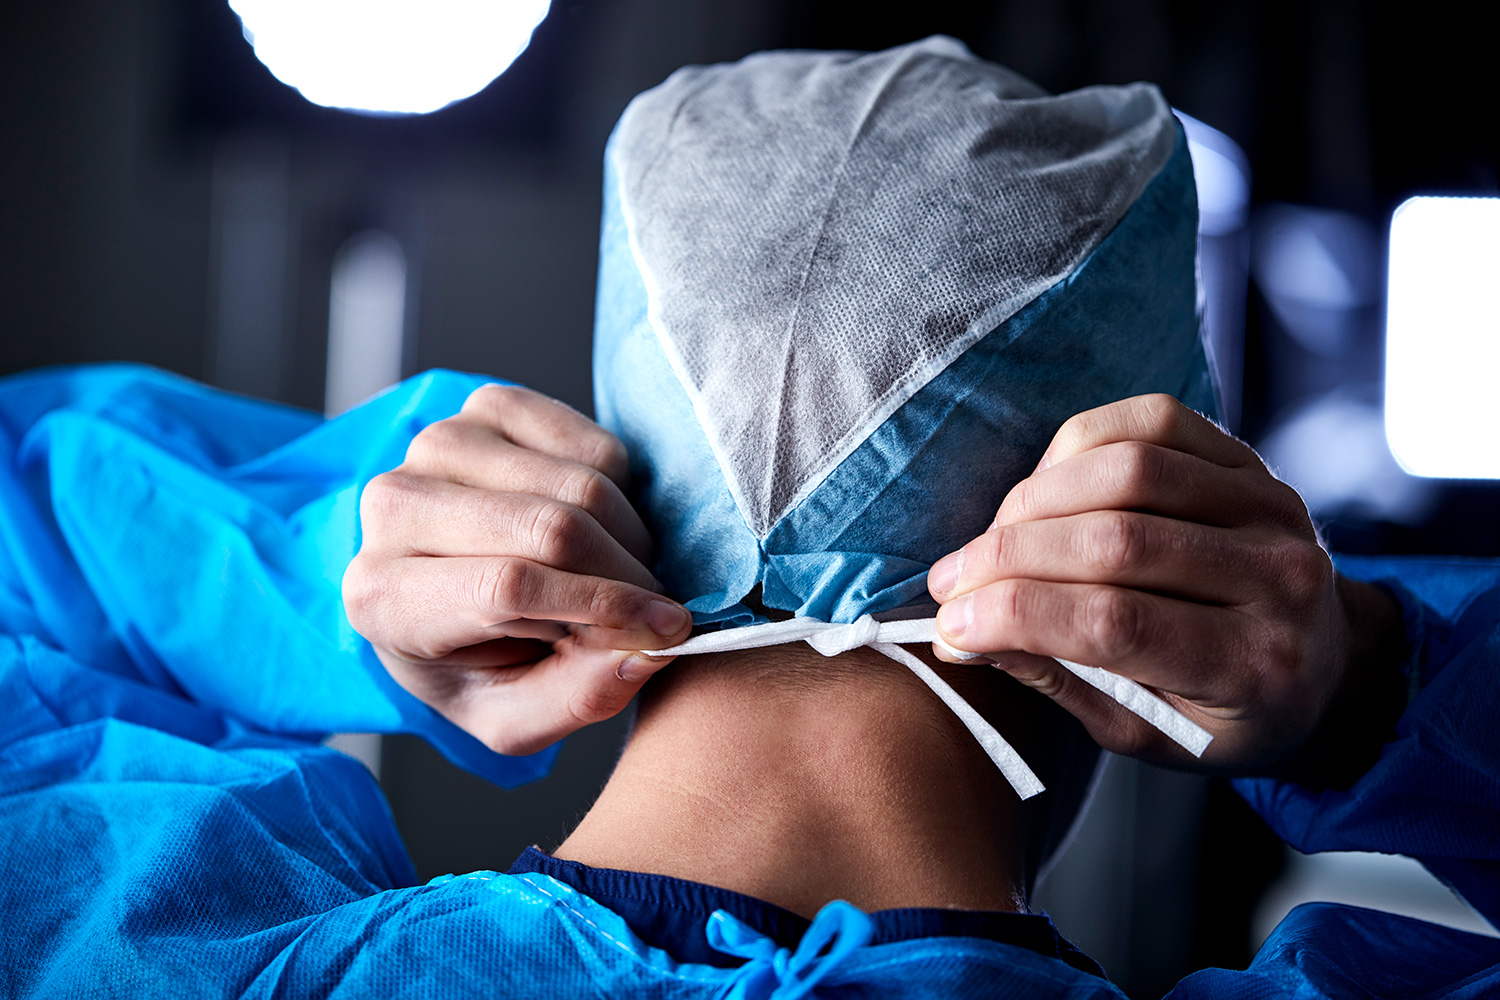 Our professional services include bariatric surgery by our minimally invasive robotic surgeon. Elite Surgical Miami | General, Reflux, & Bariatrics is here for your general surgery needs. 786.310.2283.